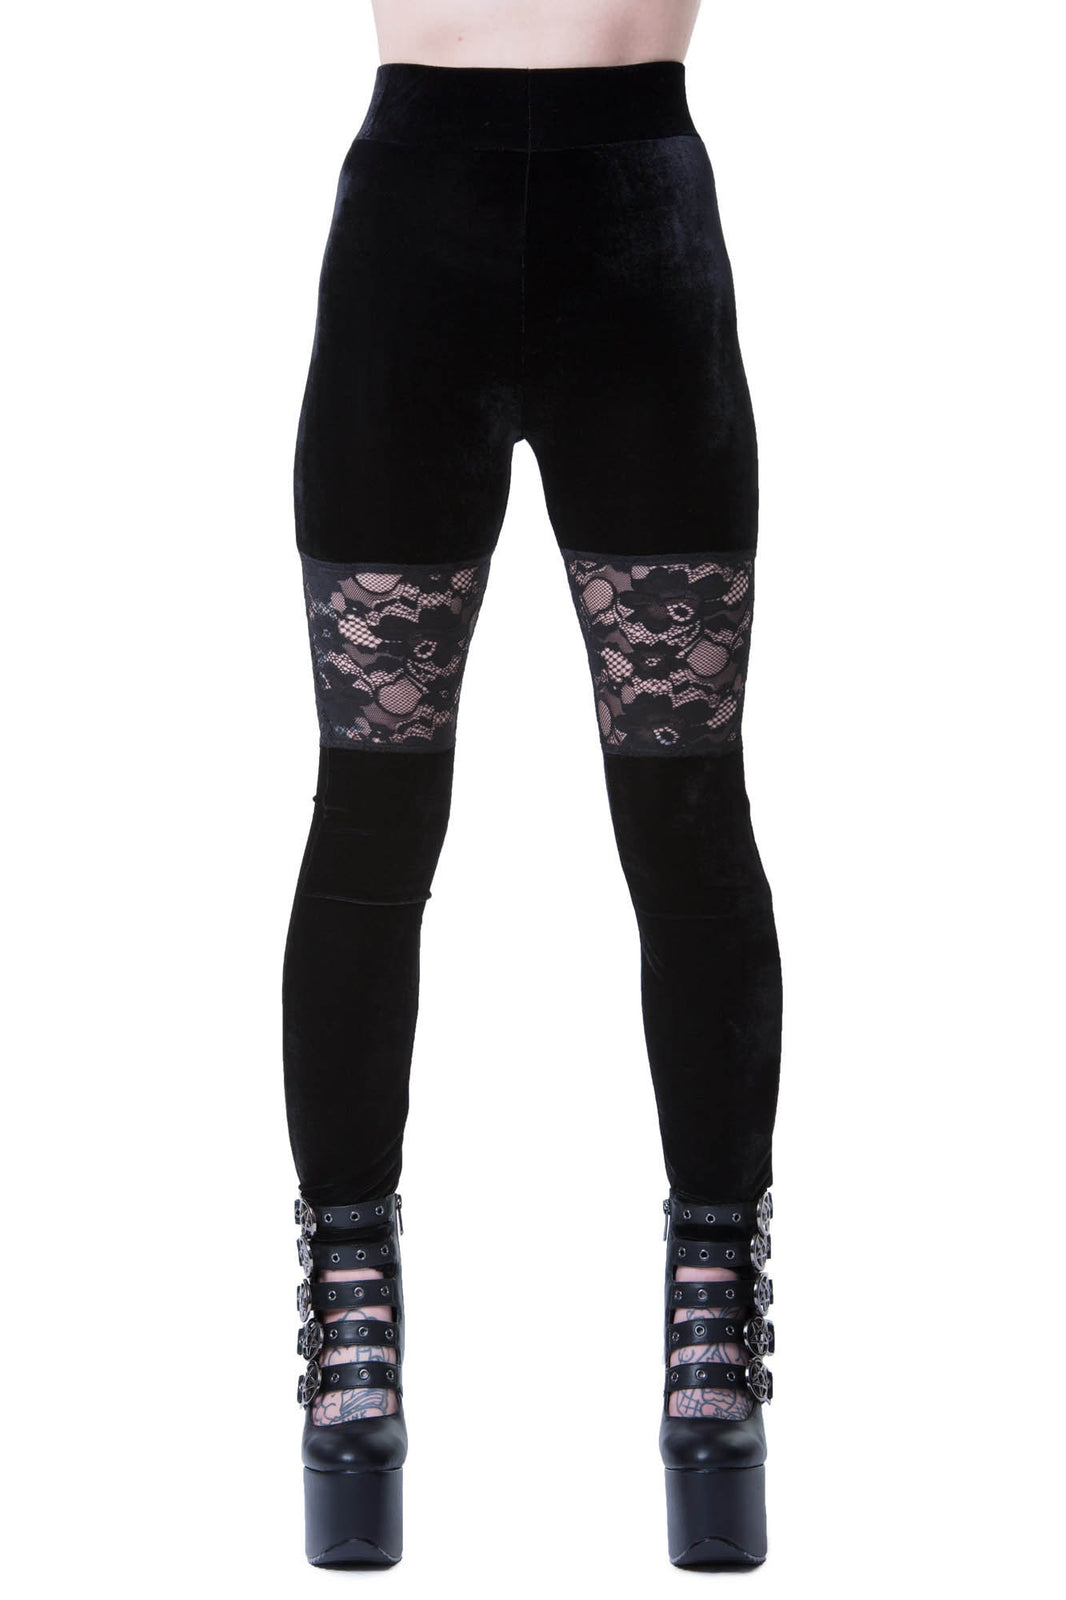 Rose Merry Leggings [B]